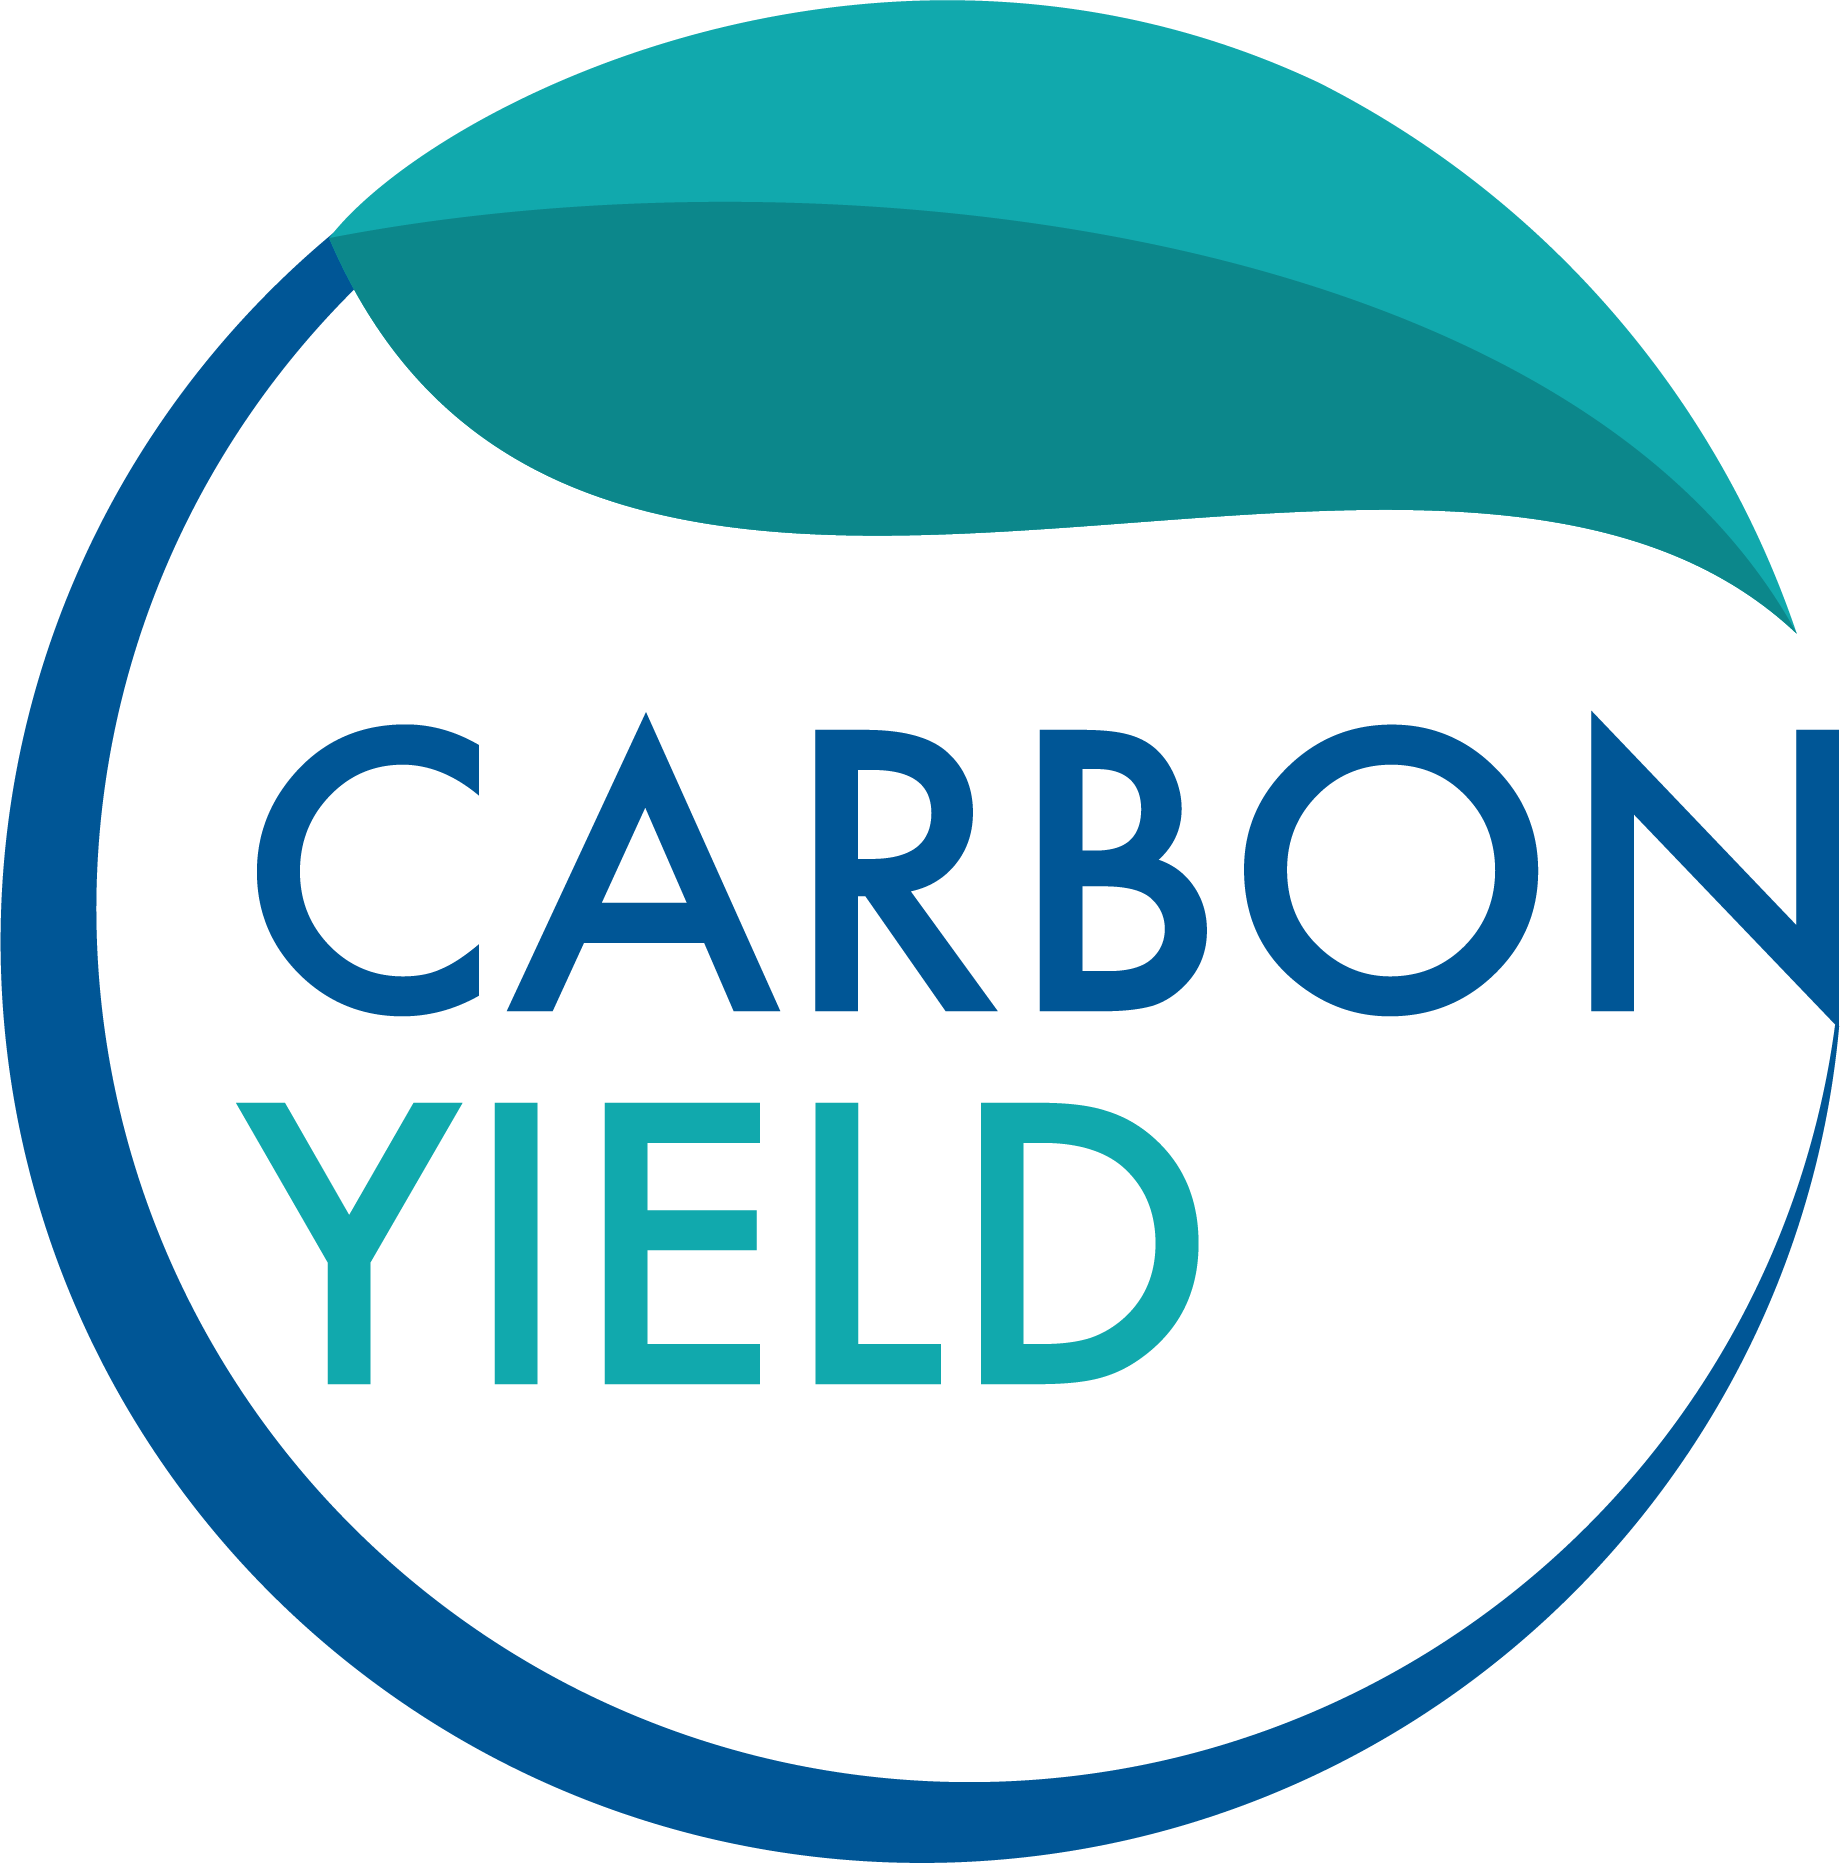 Carbon Yield